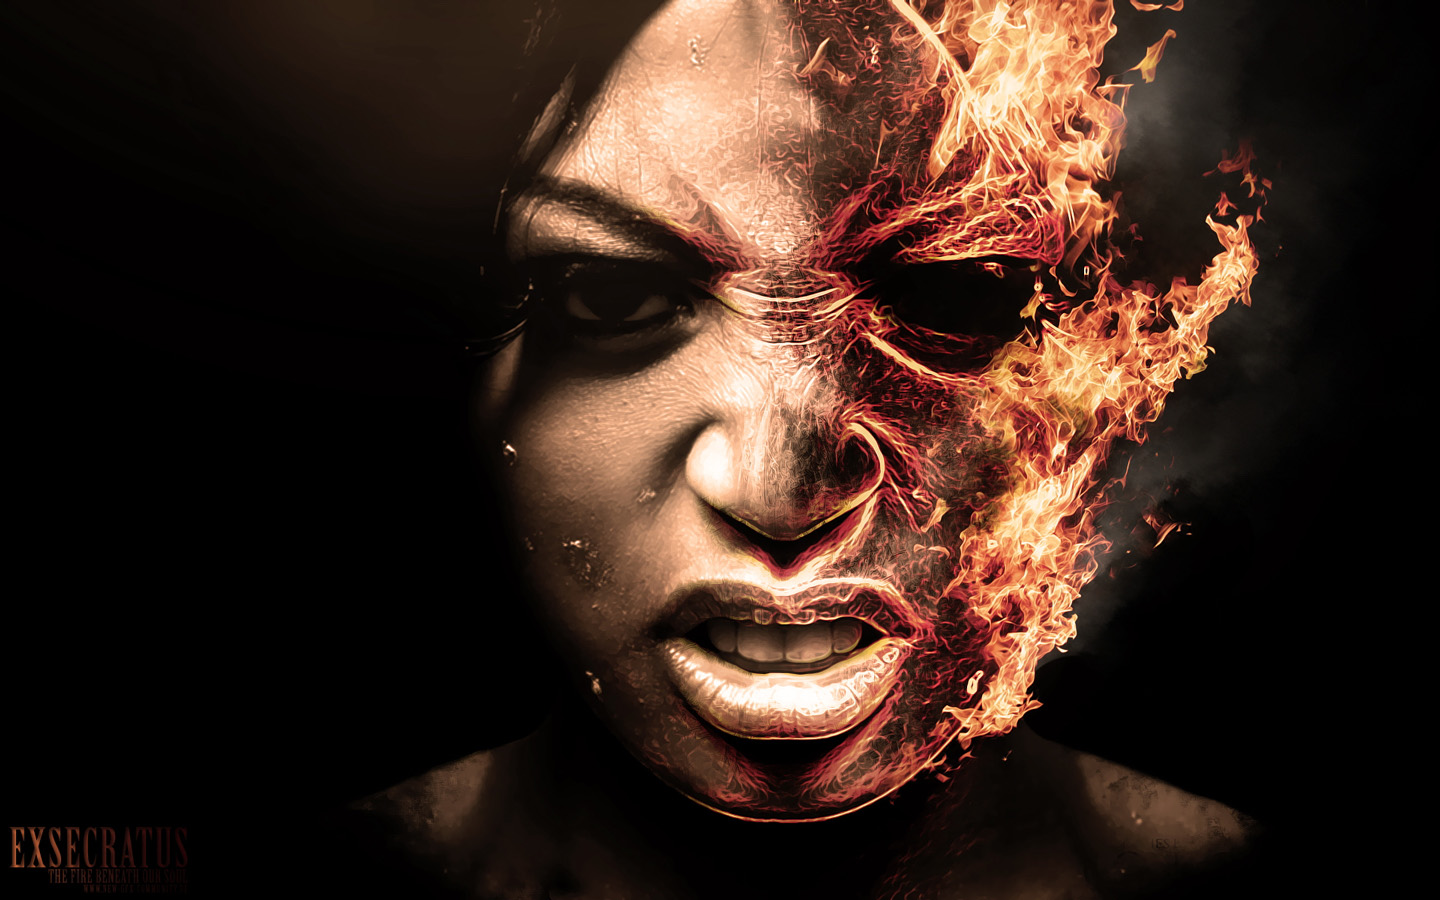 free-burning-face-wallpaper_1440x900_86171.jpg